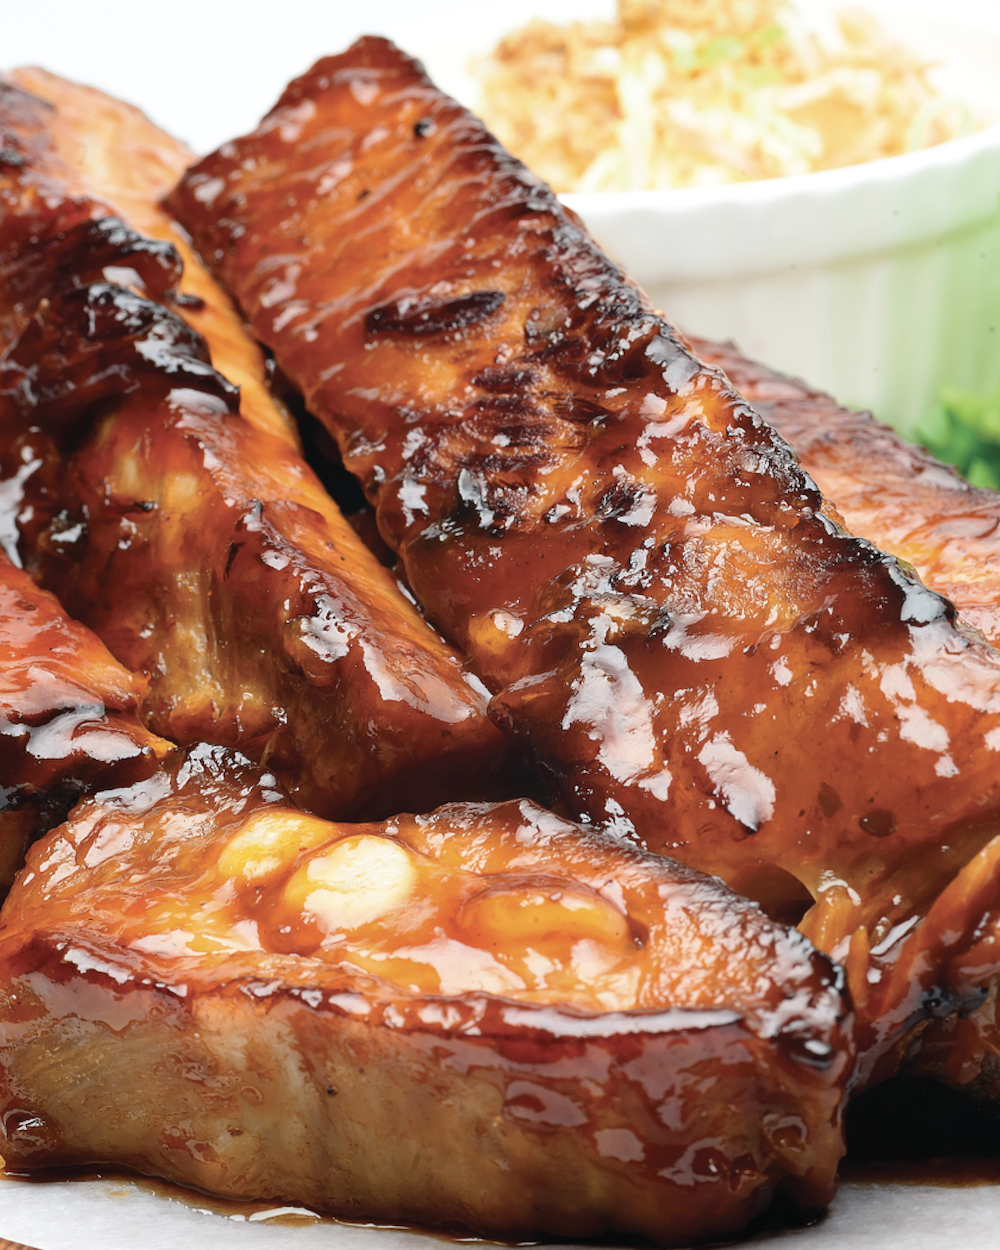 Baked Country-Style Ribs